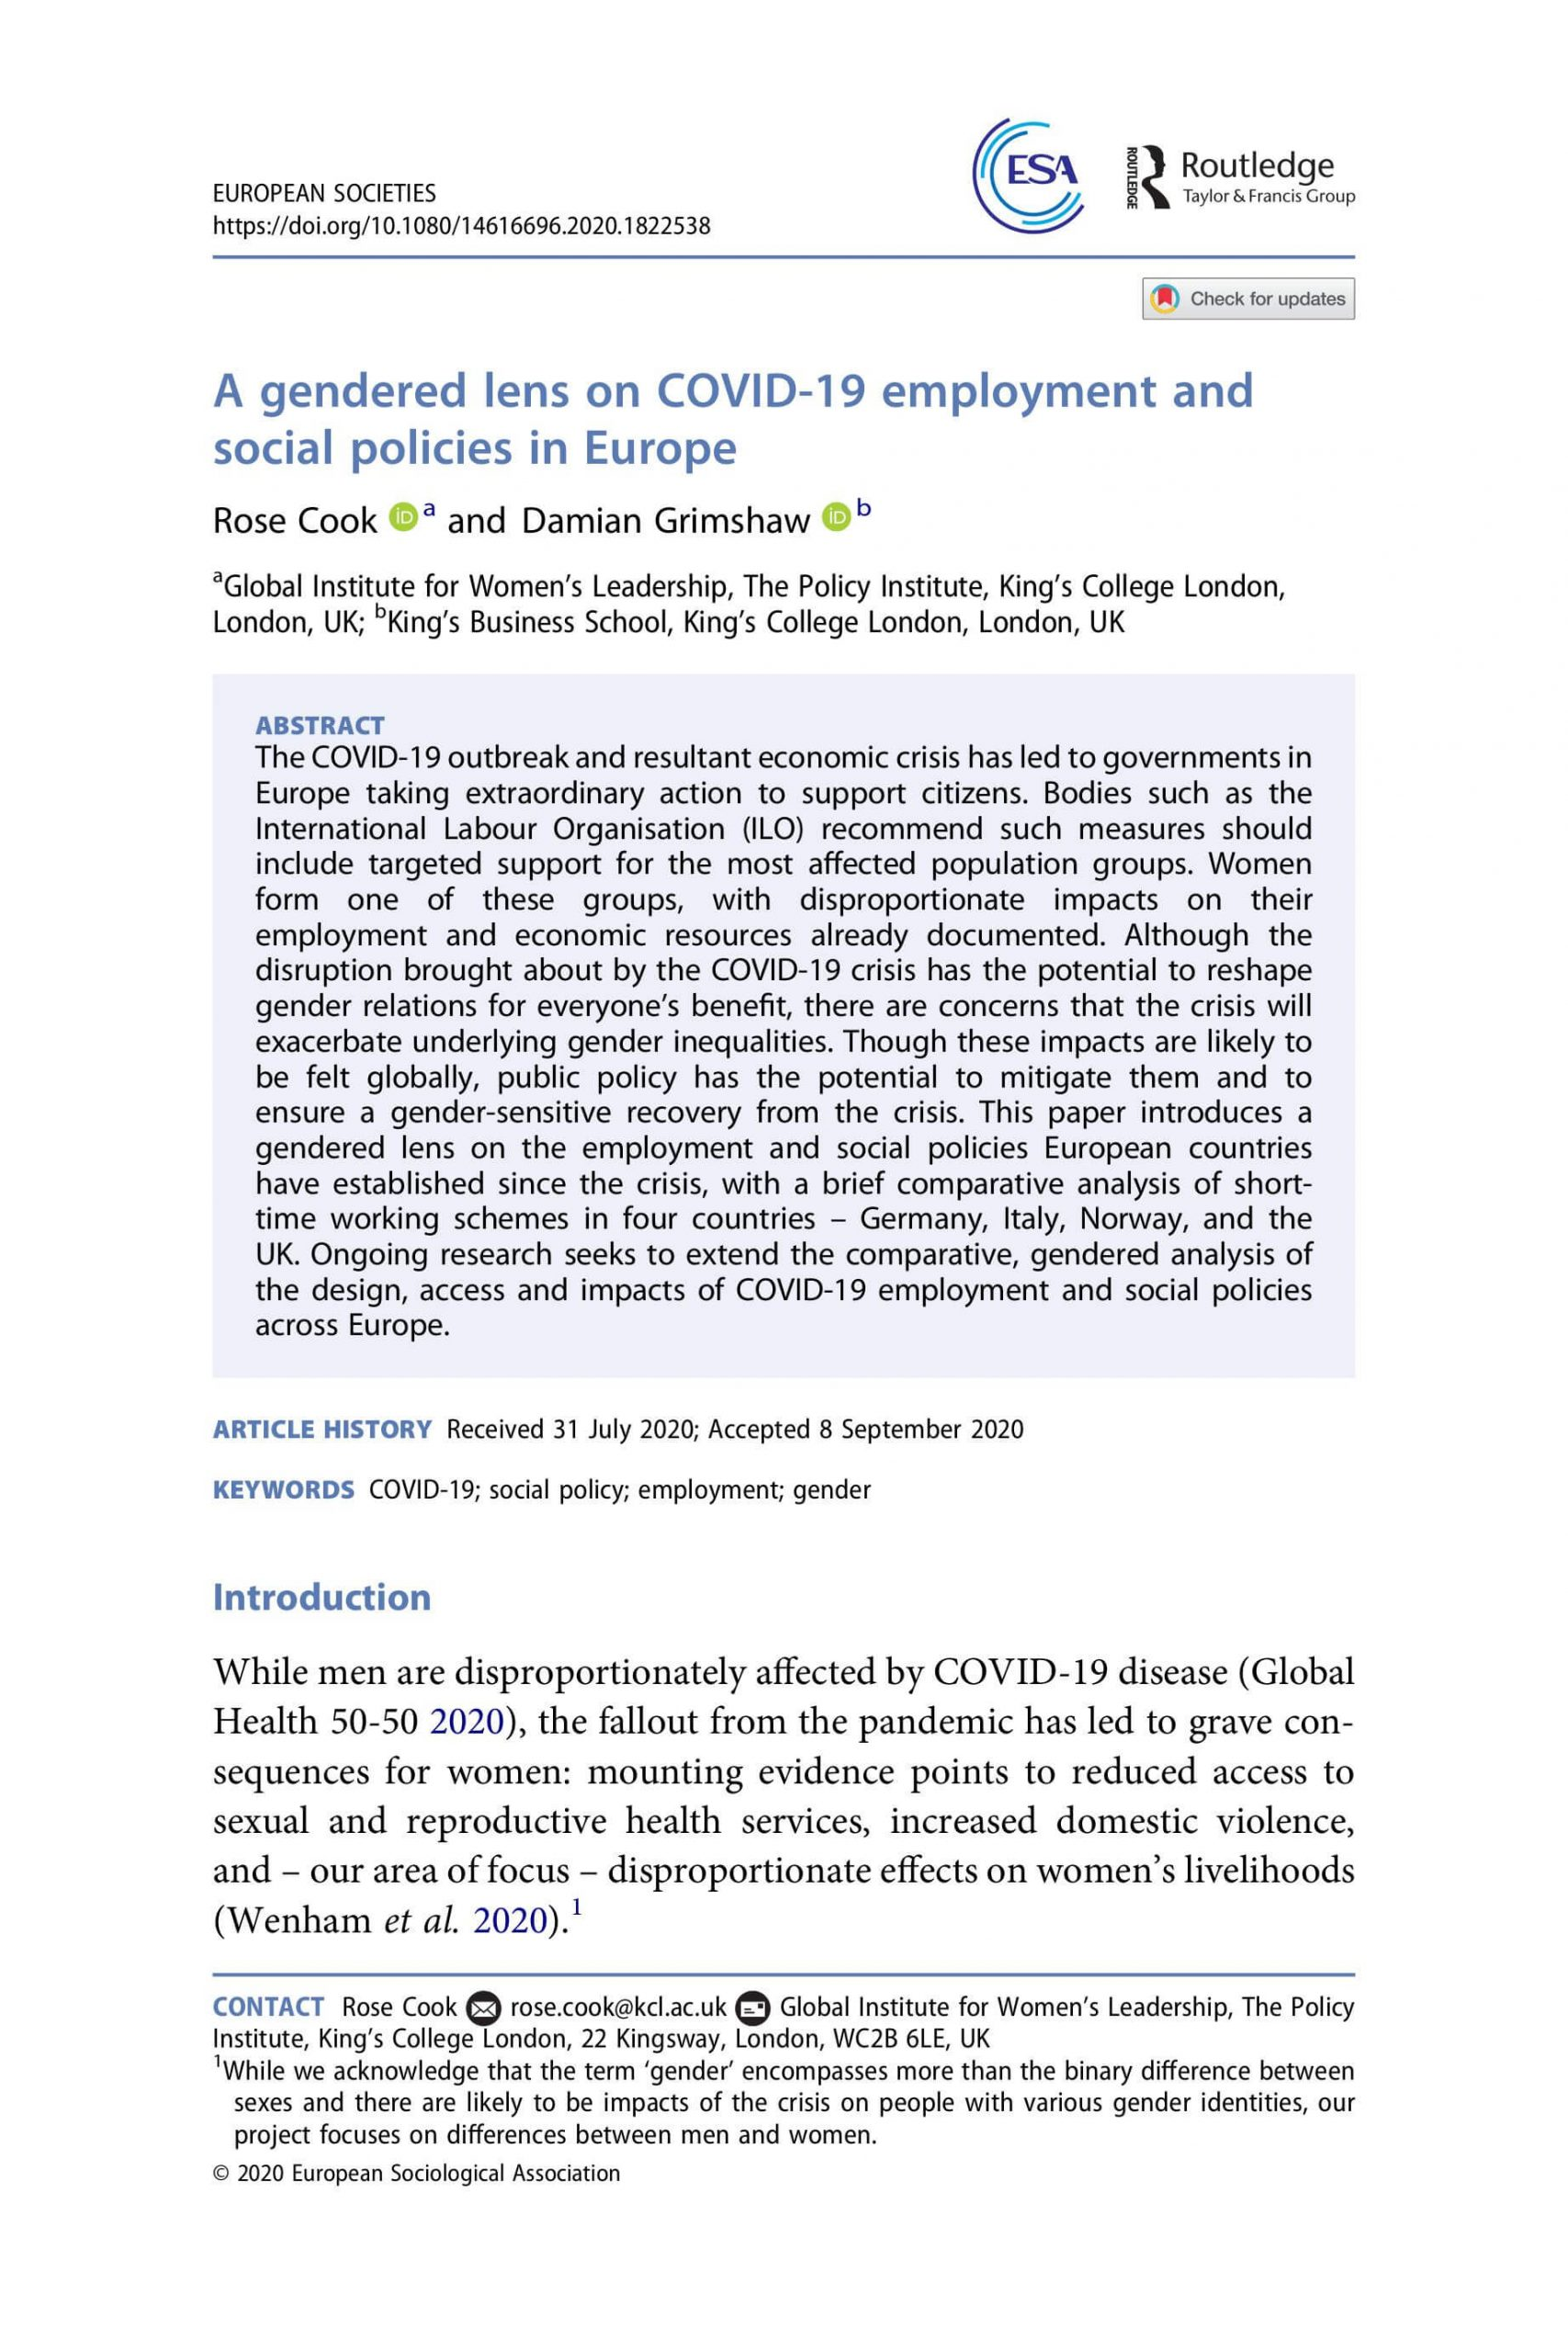 A gendered lens on COVID-19 employment and social policies in Europe